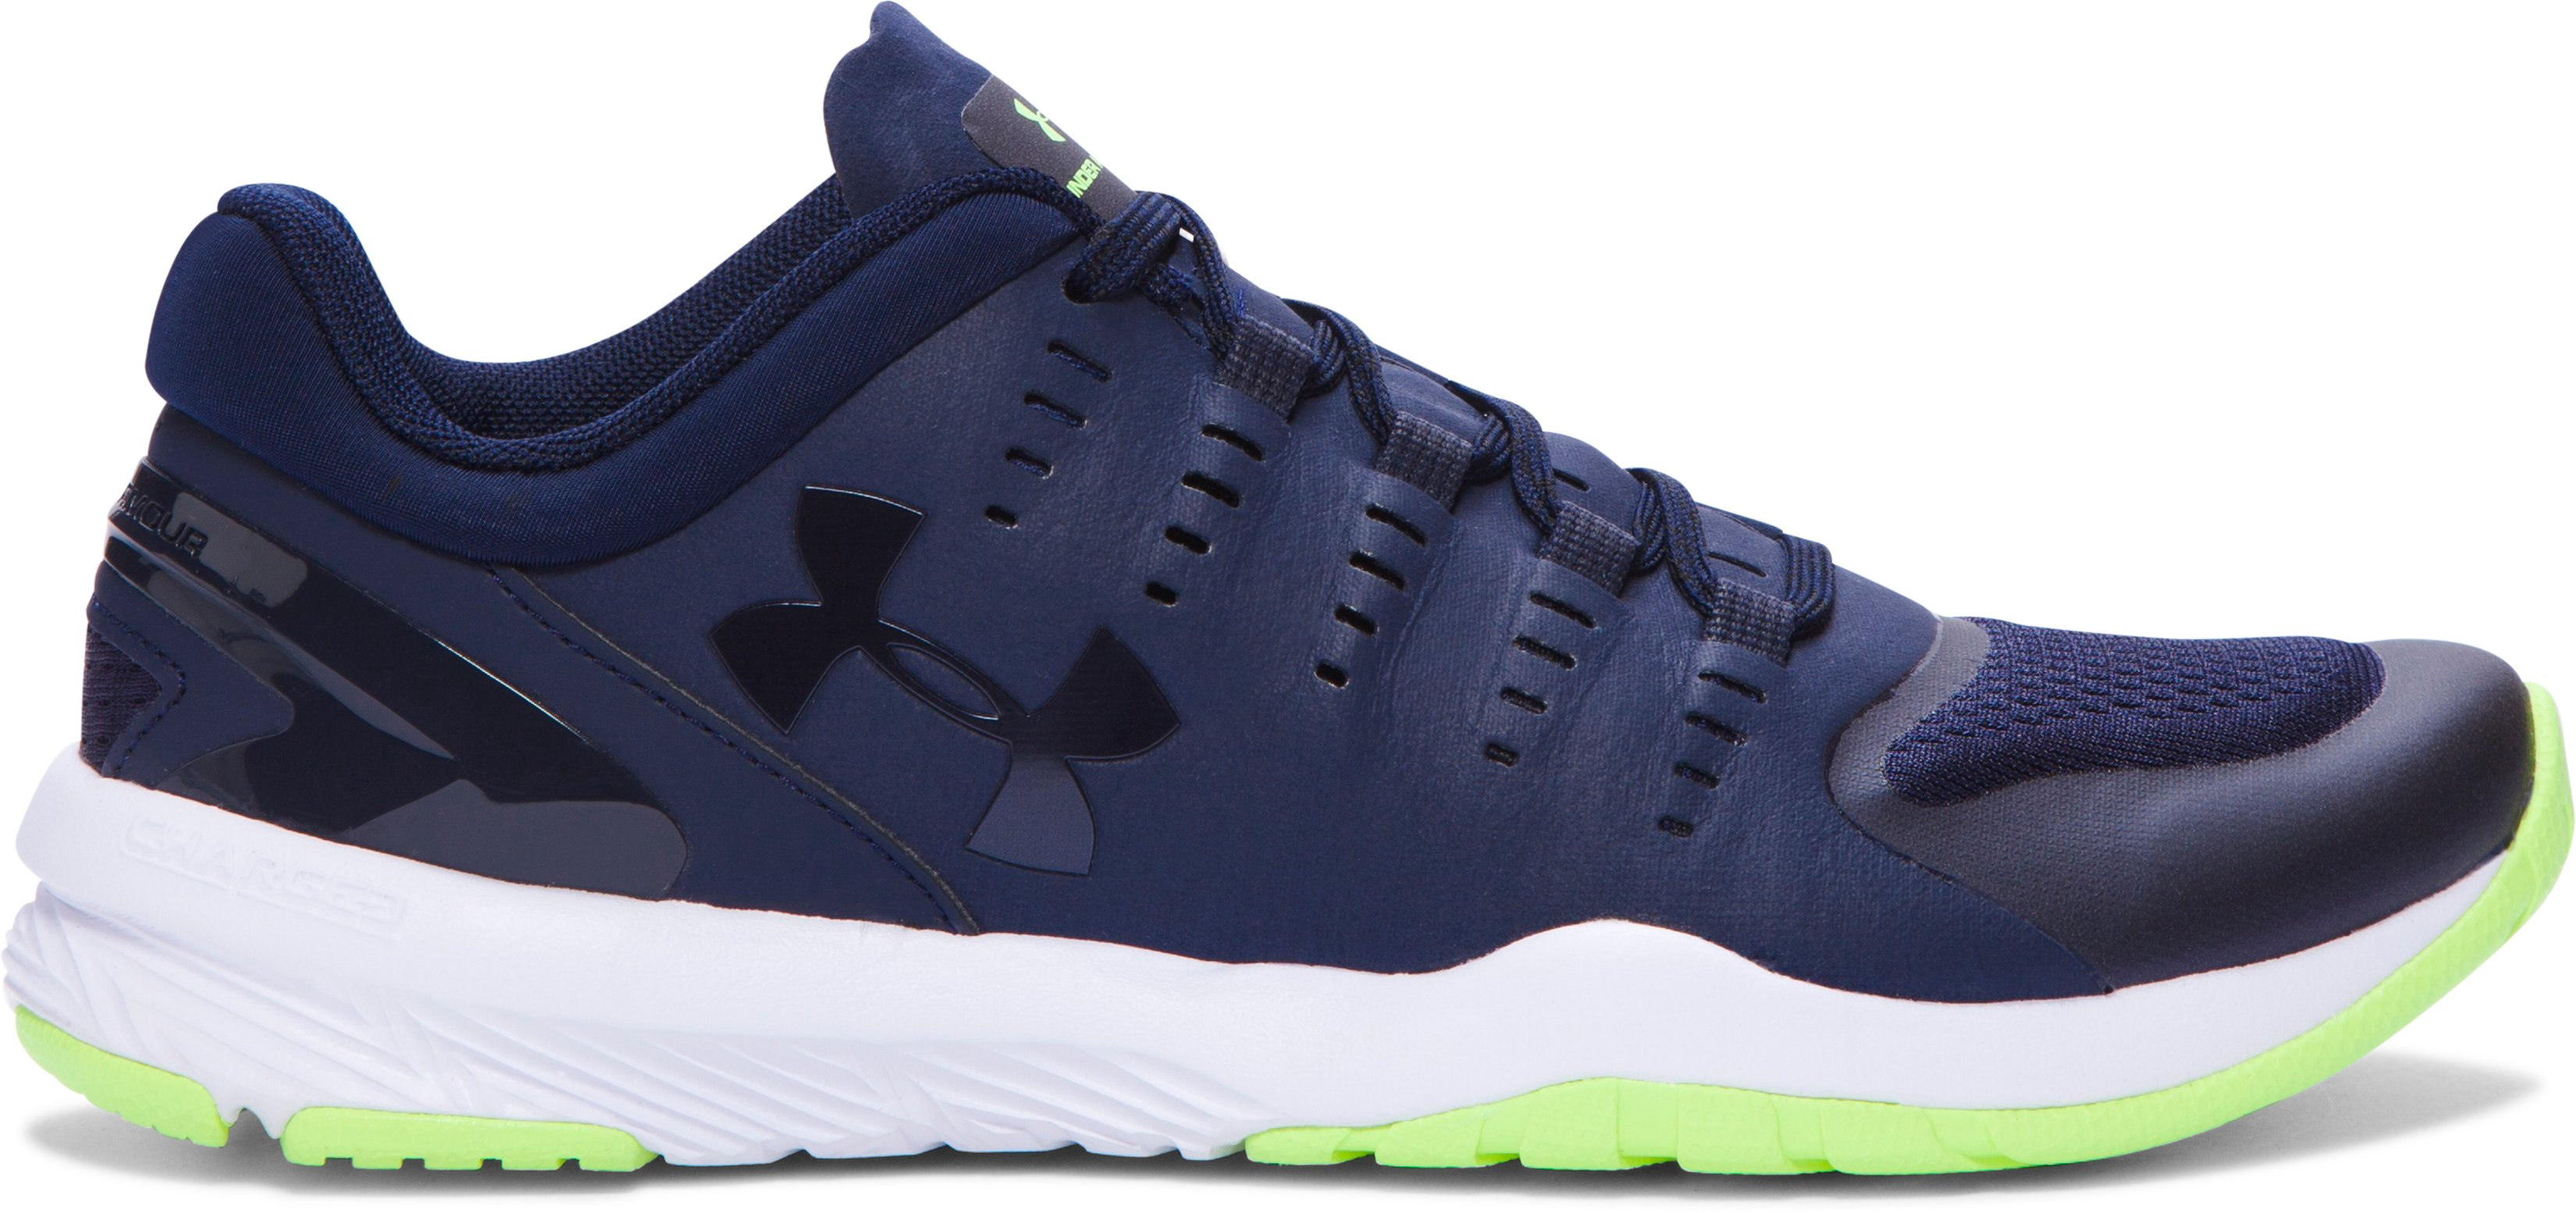 Women's UA Charged Stunner Training Shoes, Midnight Navy, zoomed image